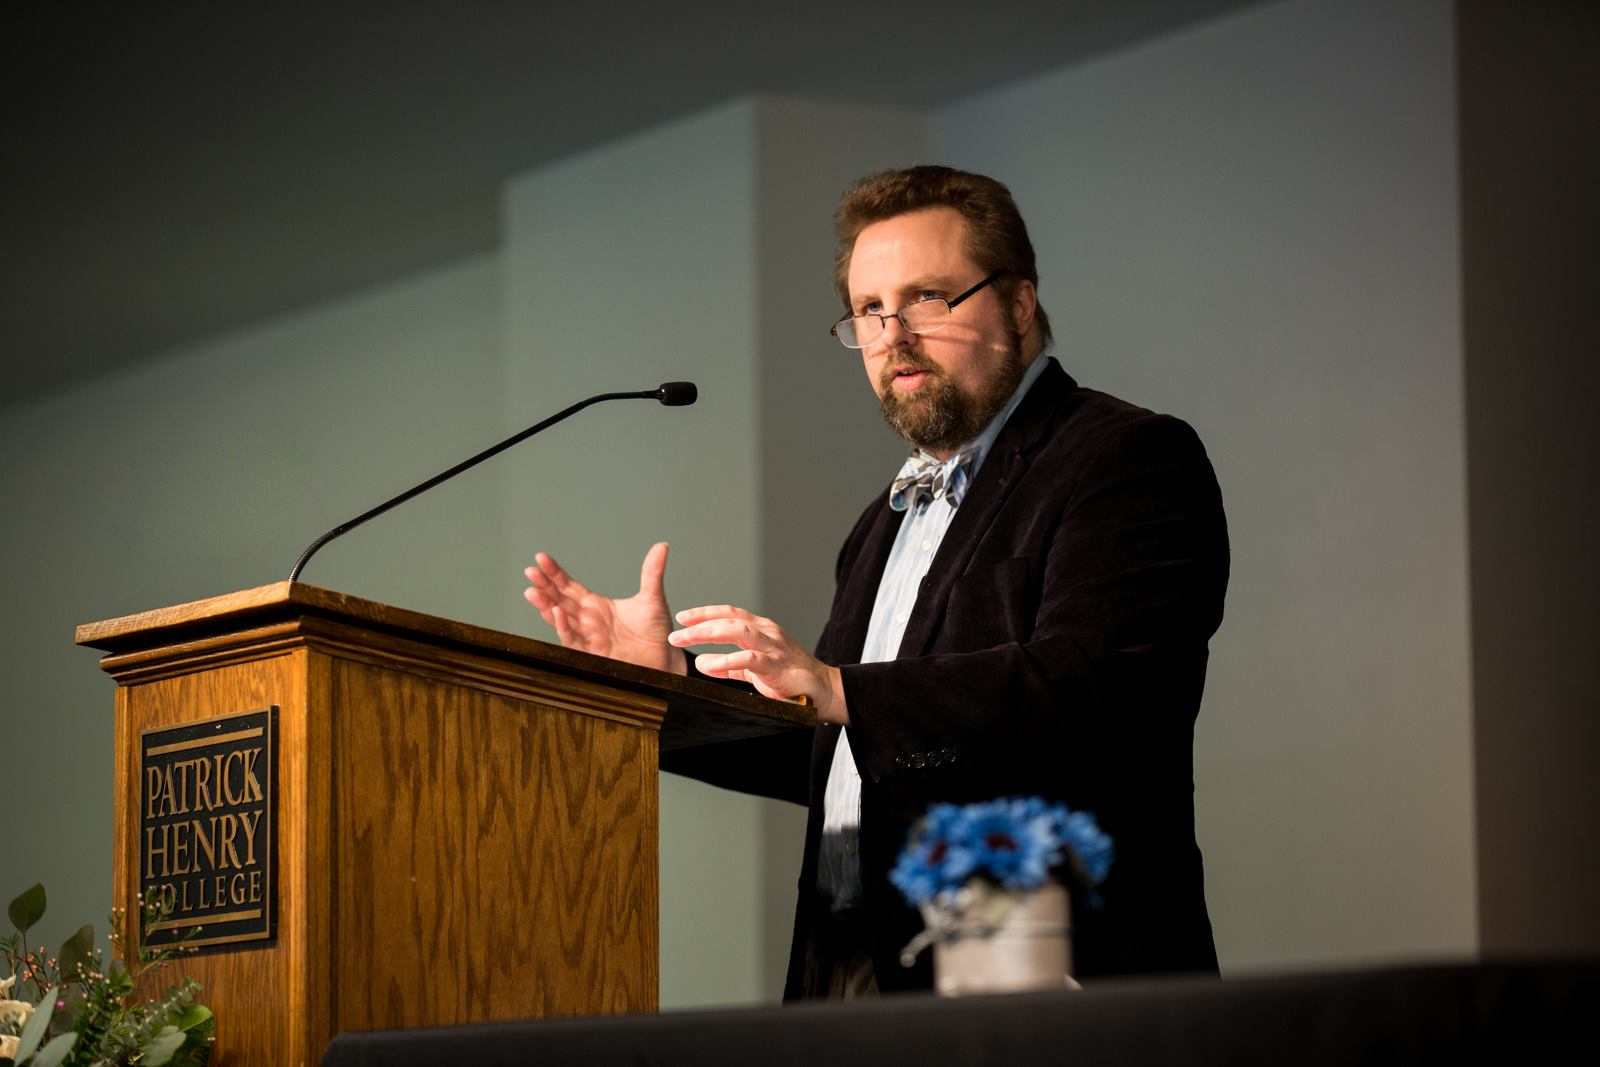 Patrick Henry College Faith & Reason lecture